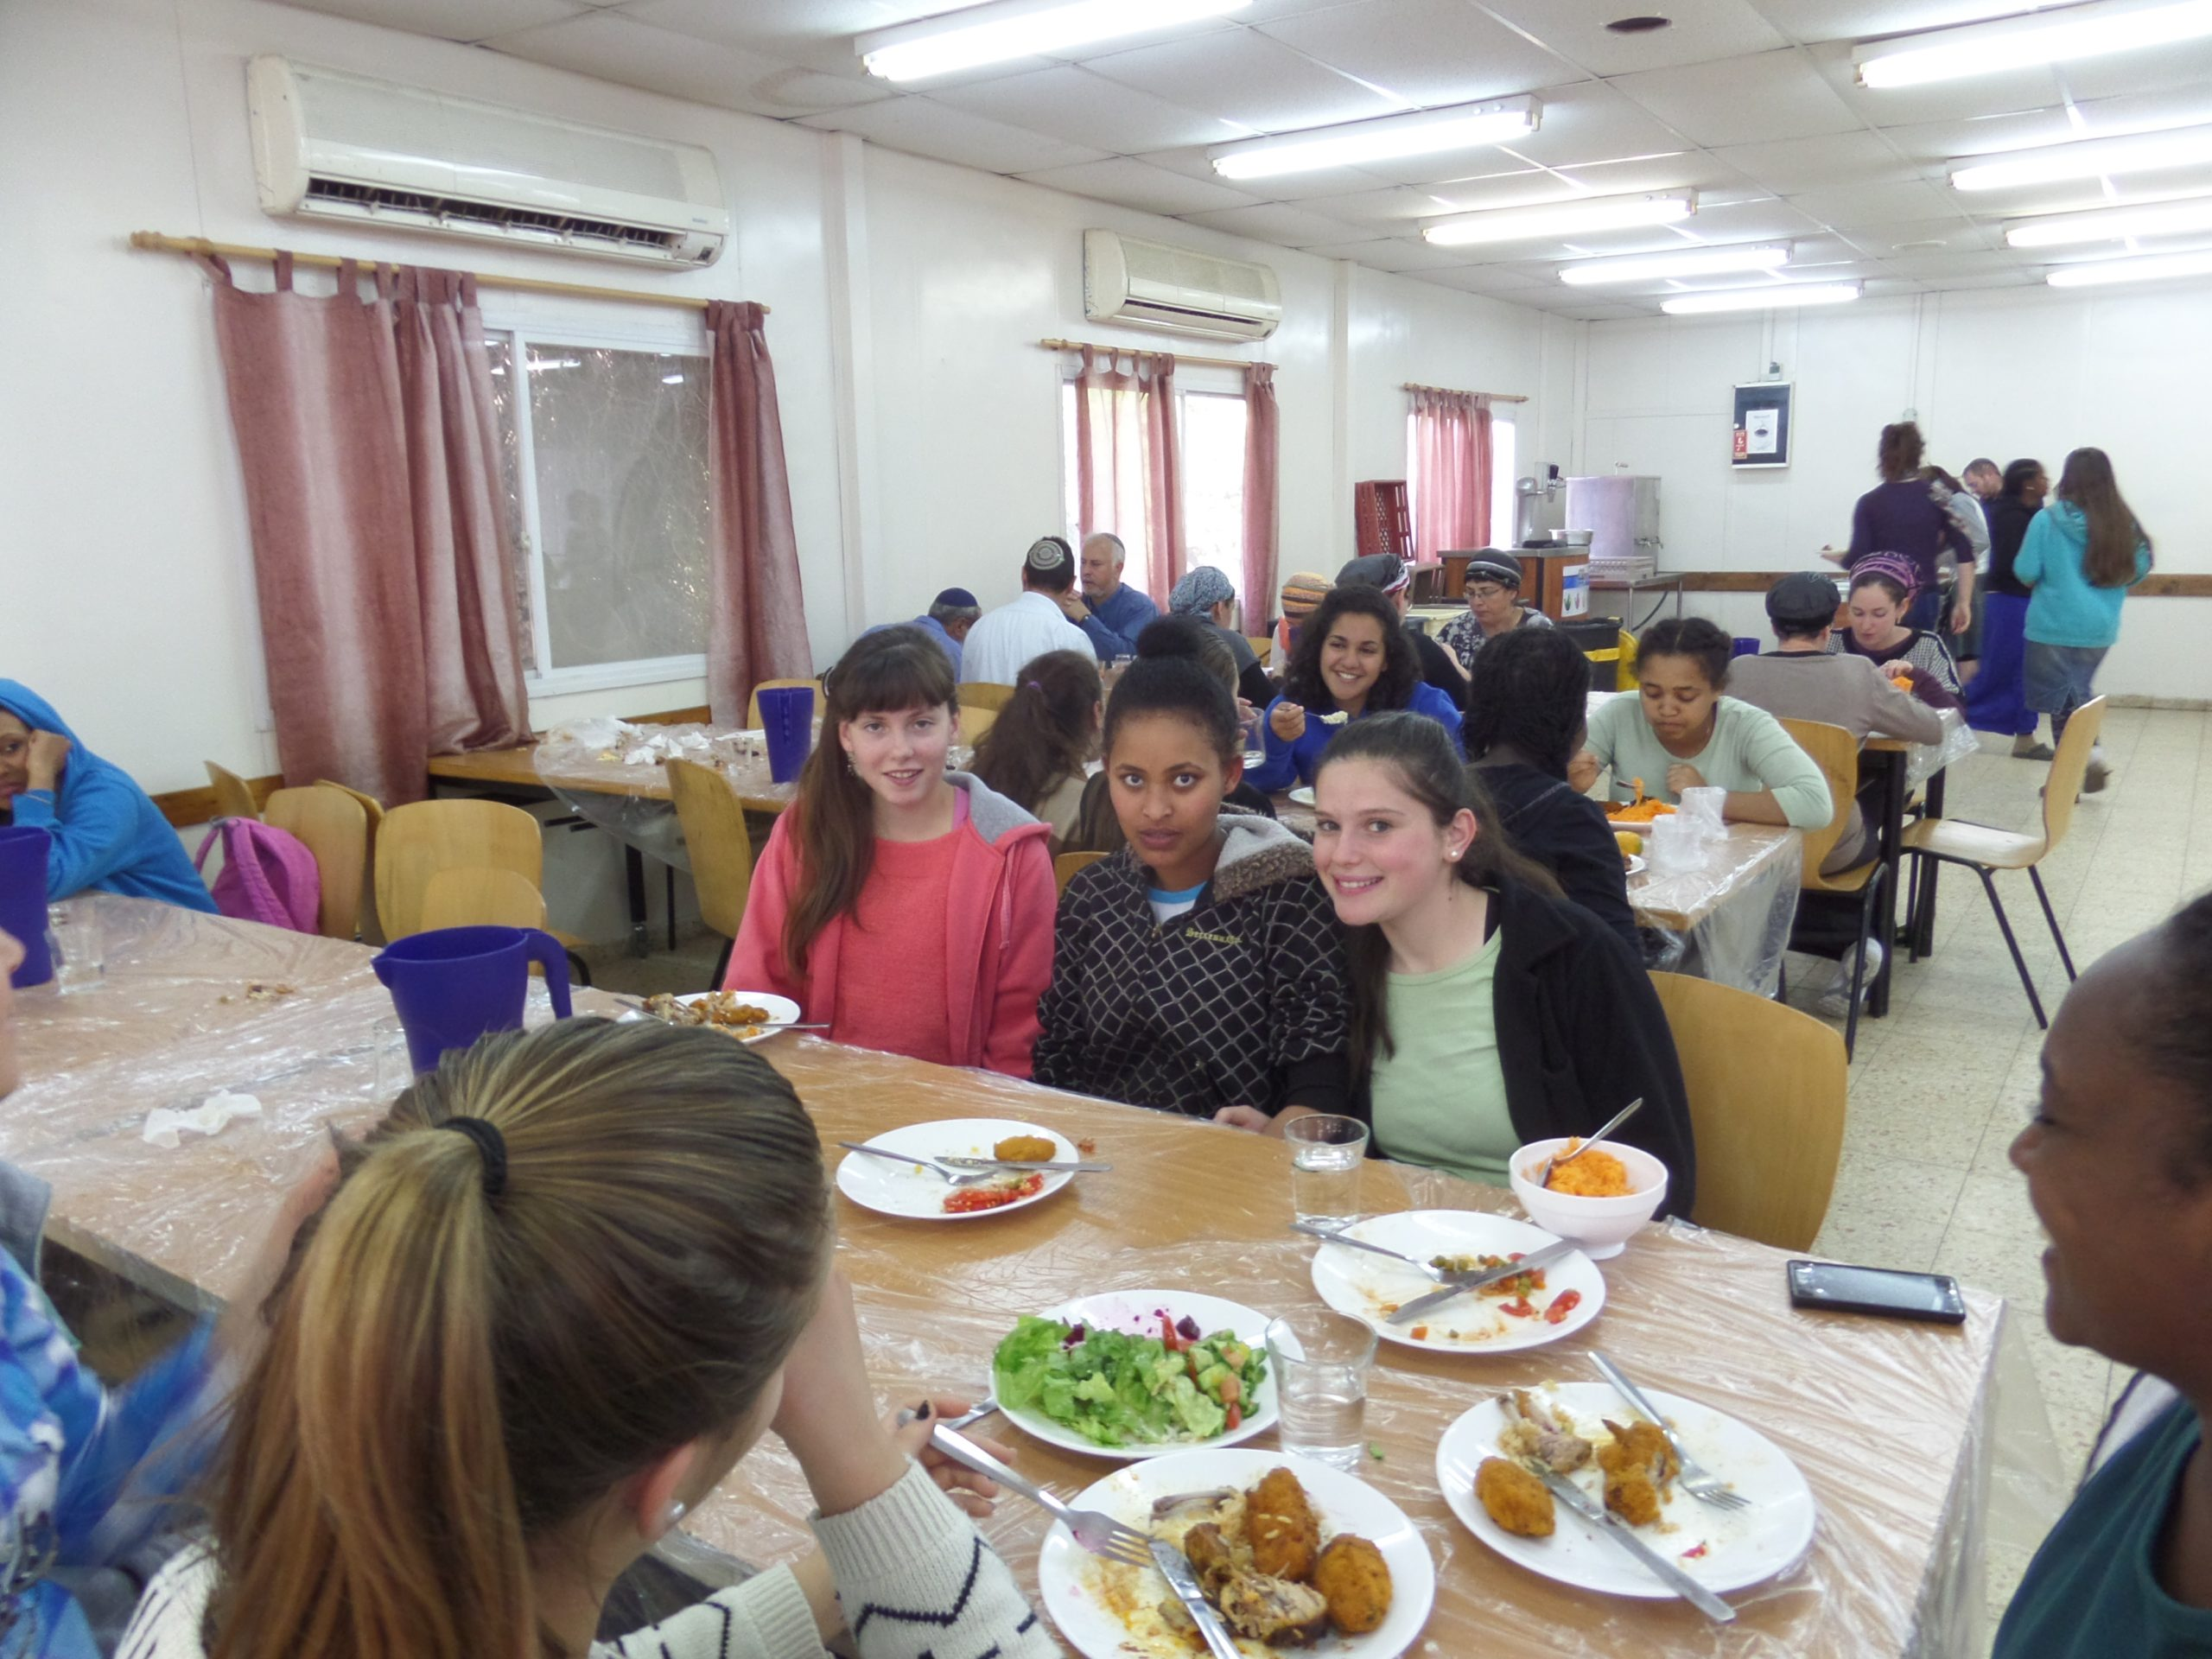 With your help, students at the Lehava High School for girls will have the laptop computers they need to succeed